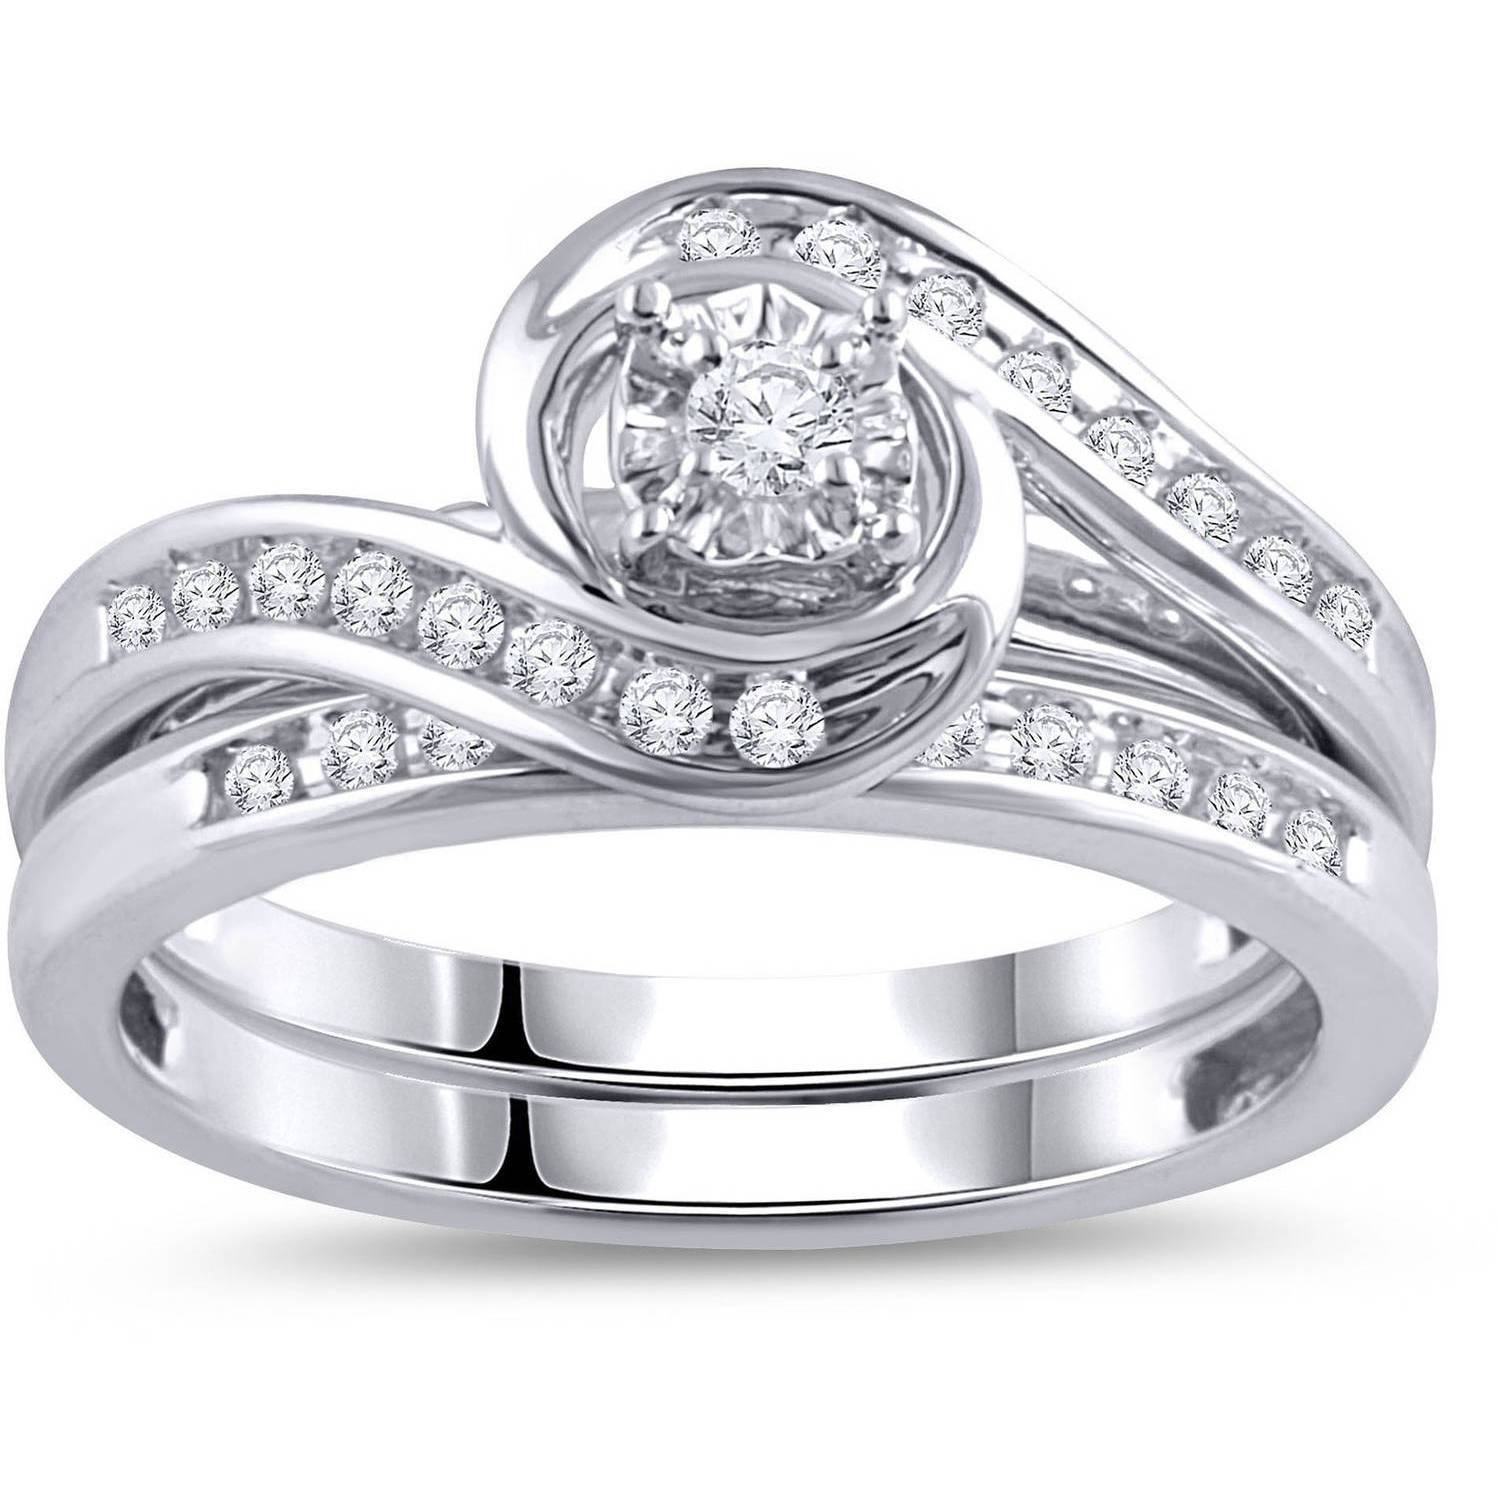 Forever Bride Women's 1/8 Carat T.w. Diamond Sterling Silver Regarding Walmart Engagement Rings (Gallery 13 of 15)